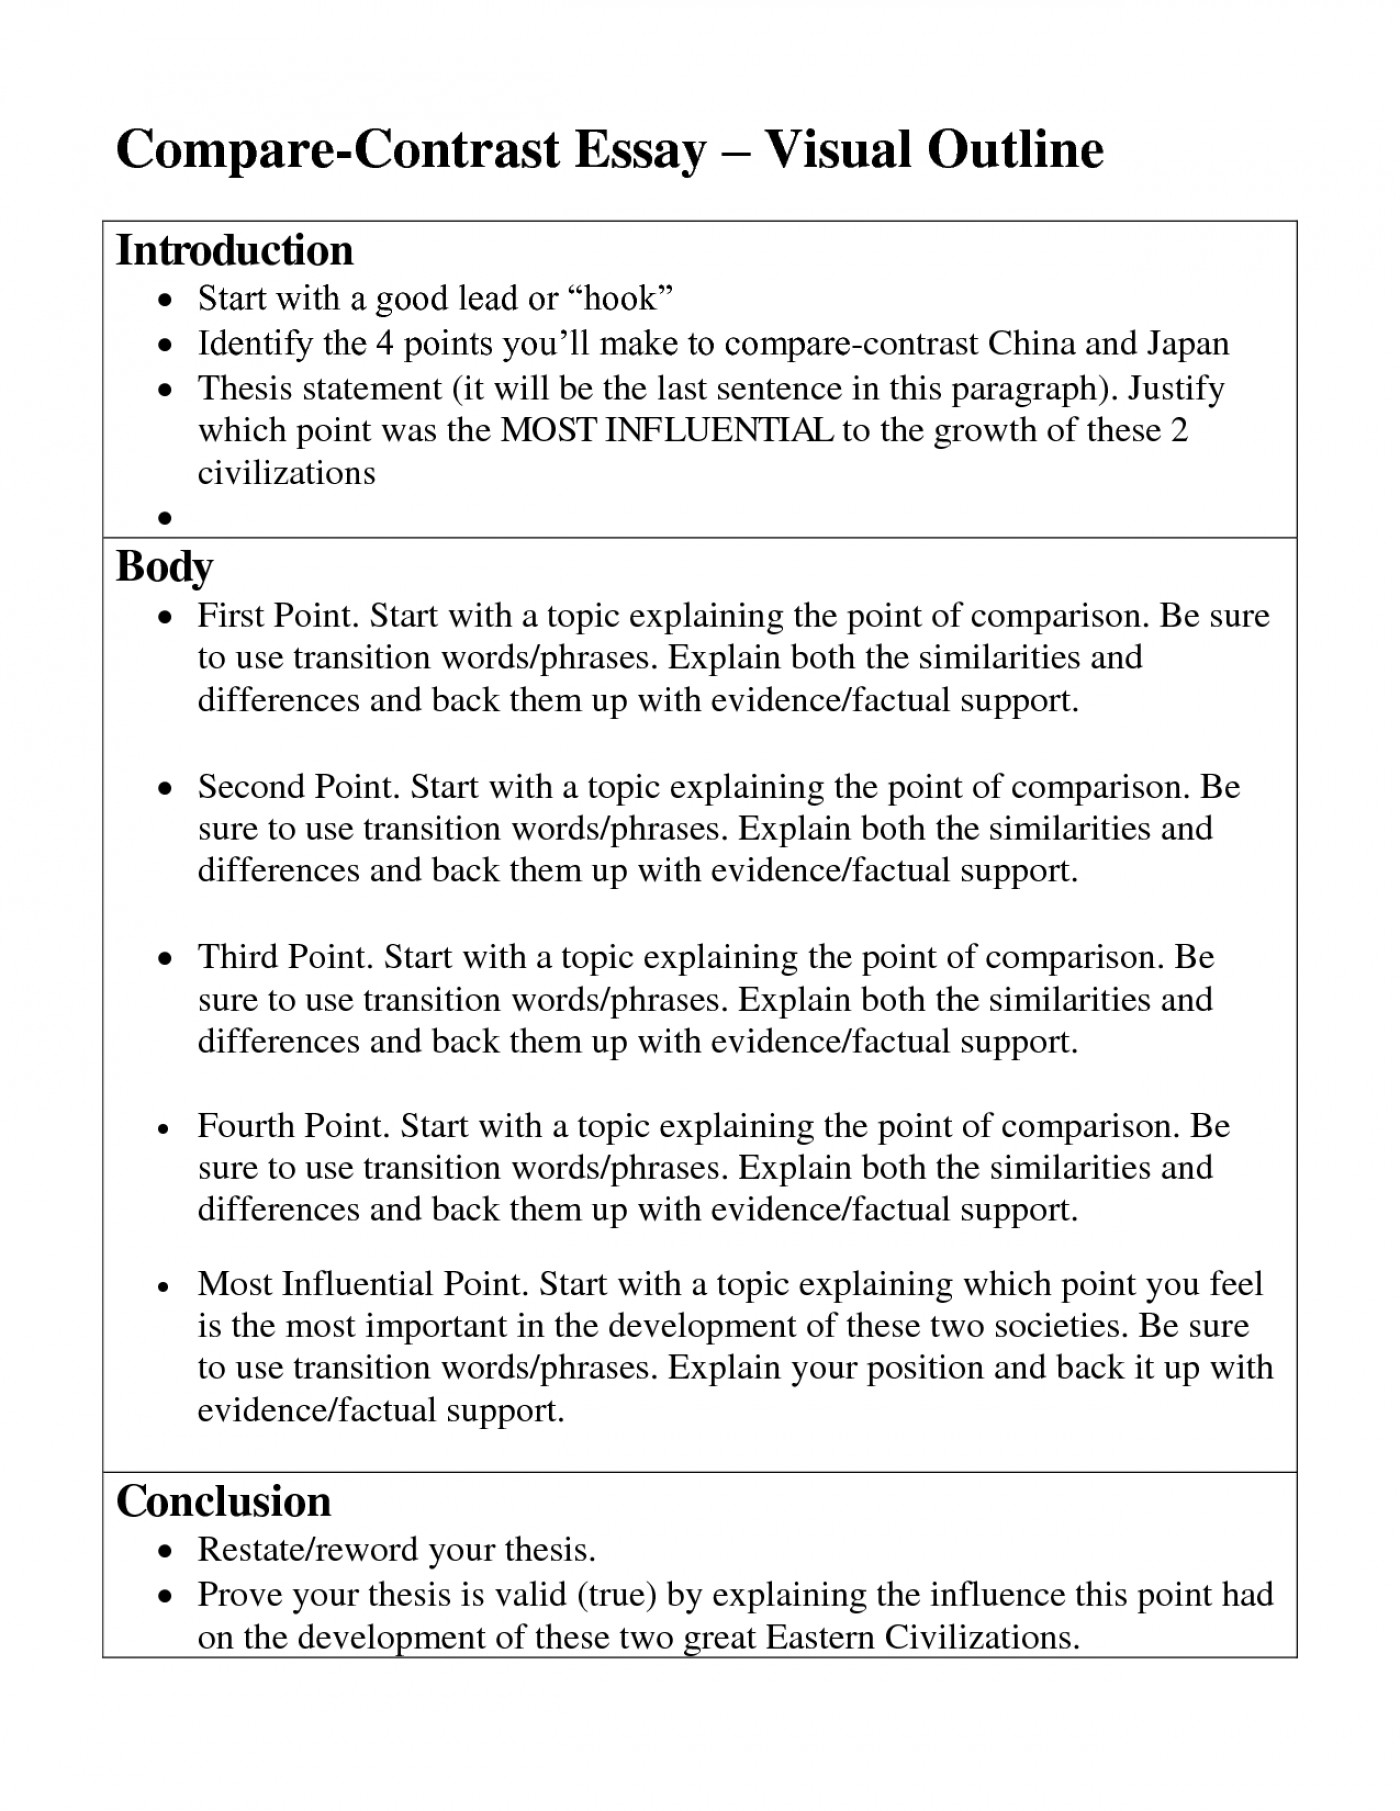 005 How To Write Compare And Contrast Essay Outstanding A Outline Comparison Ppt Middle School 1400